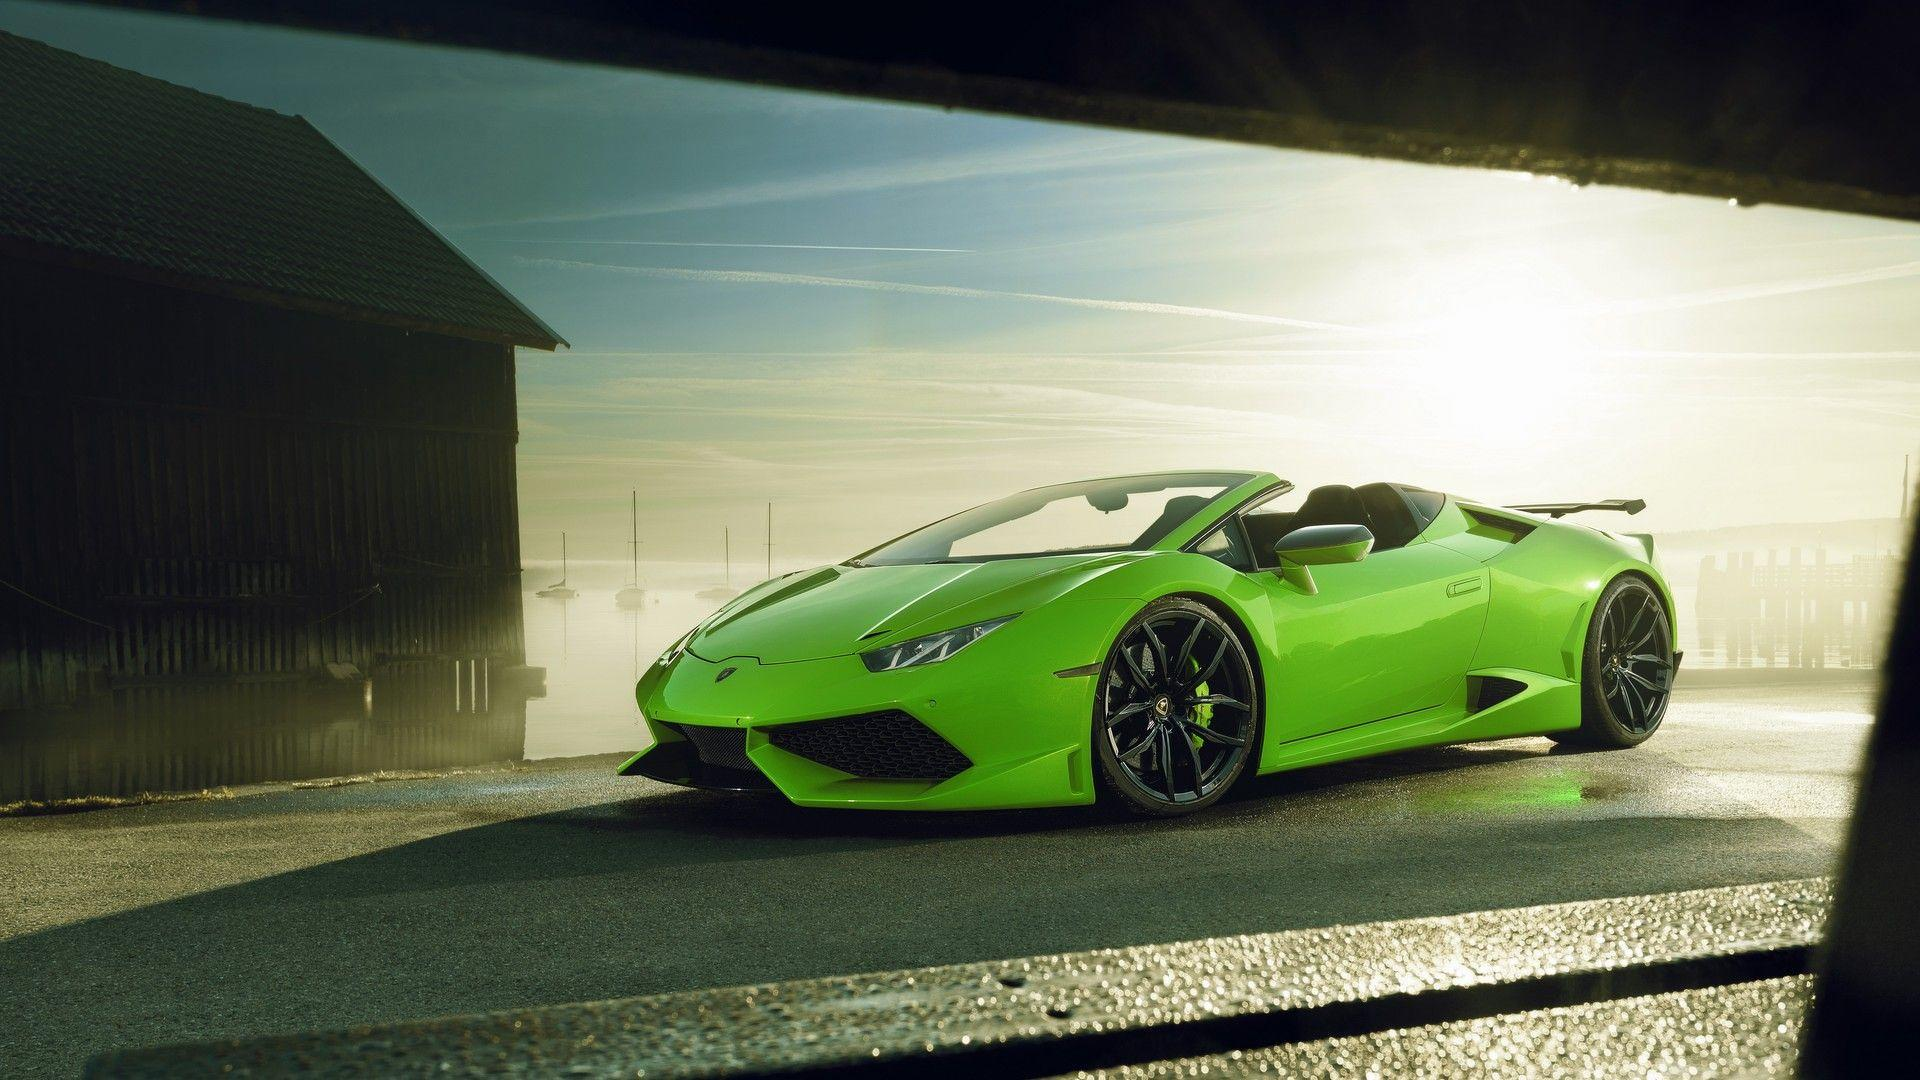 widebody lamborghini huracan spyder by novitec has 860 hp autoevolution. Black Bedroom Furniture Sets. Home Design Ideas